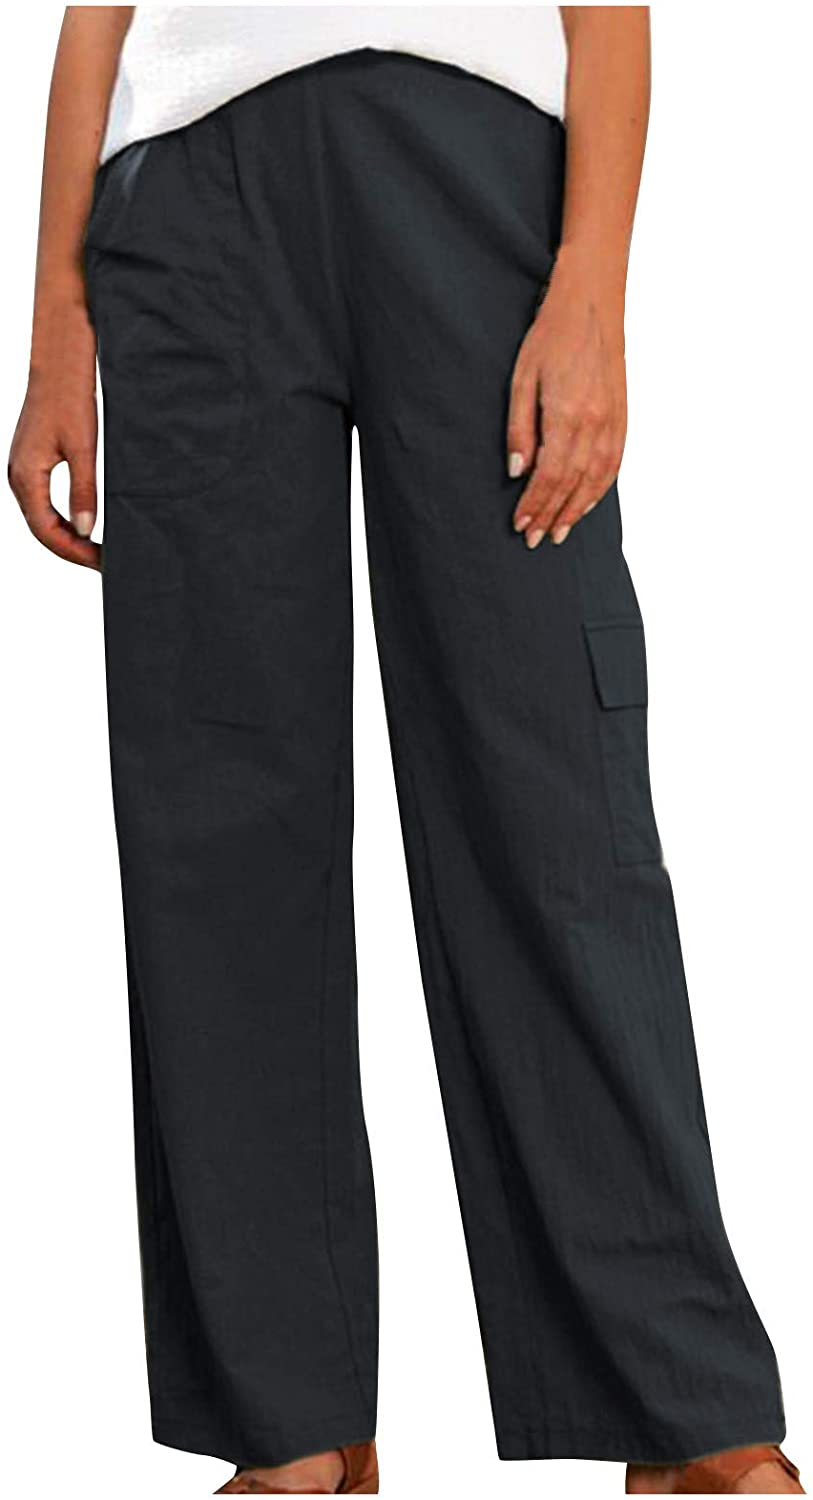 Womens Plus Size Loose Linen Pants Solid Color Wide Straight Leg Comfy Casual Pants with Multi-Pockets